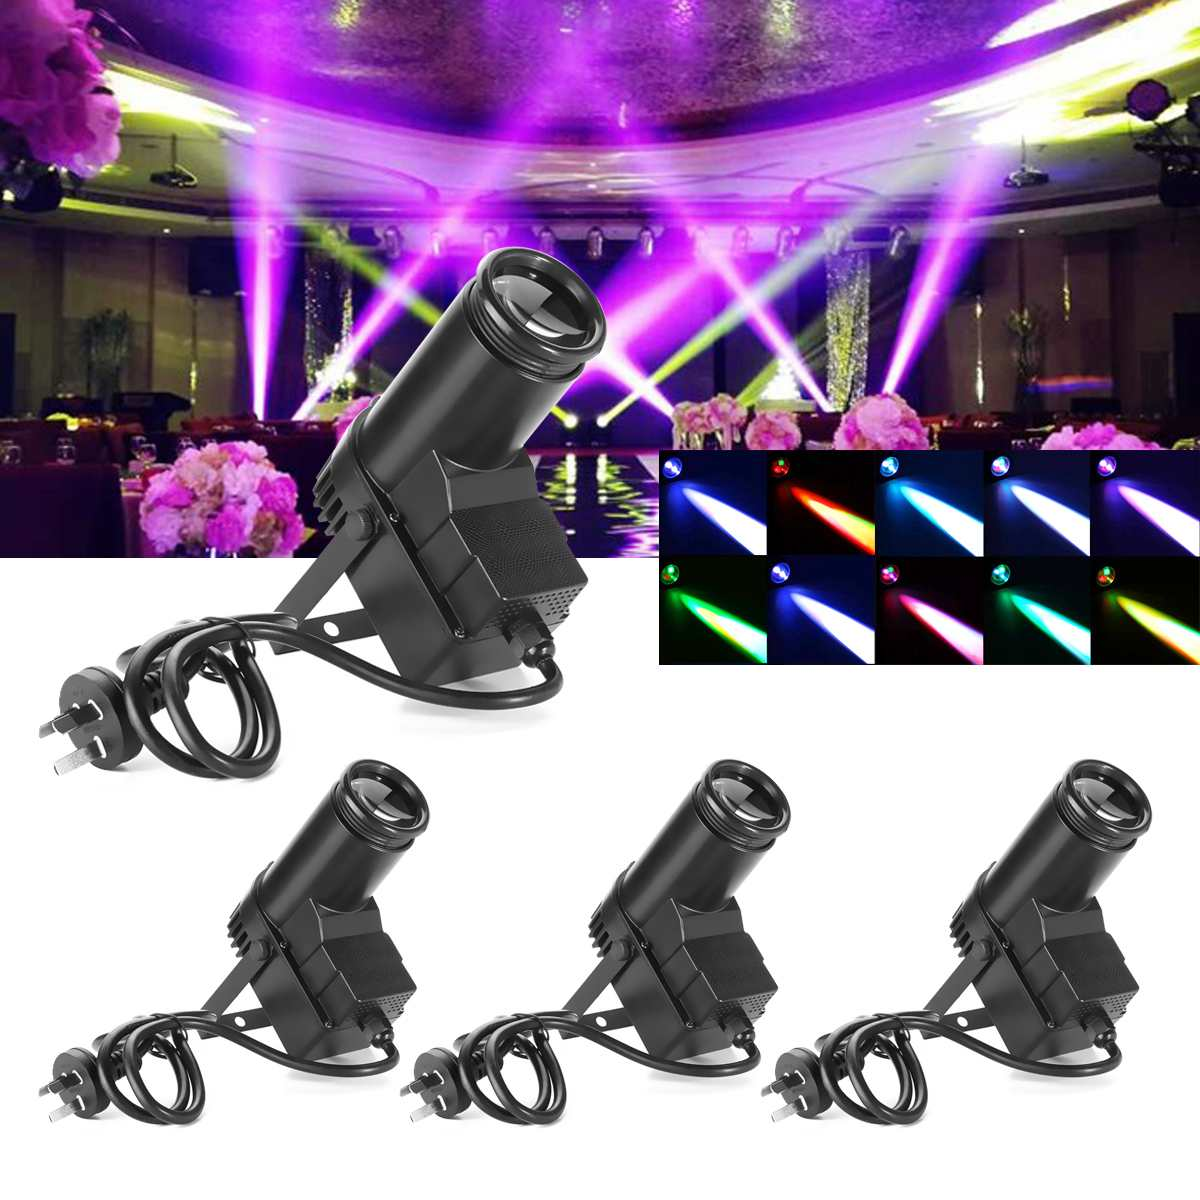 30W AC110-240V DMX RGBW LED Stage Light Pinspot Light Beam Spotlight 6CH Professional DISCO KTV DJ Stage Lighting Effect